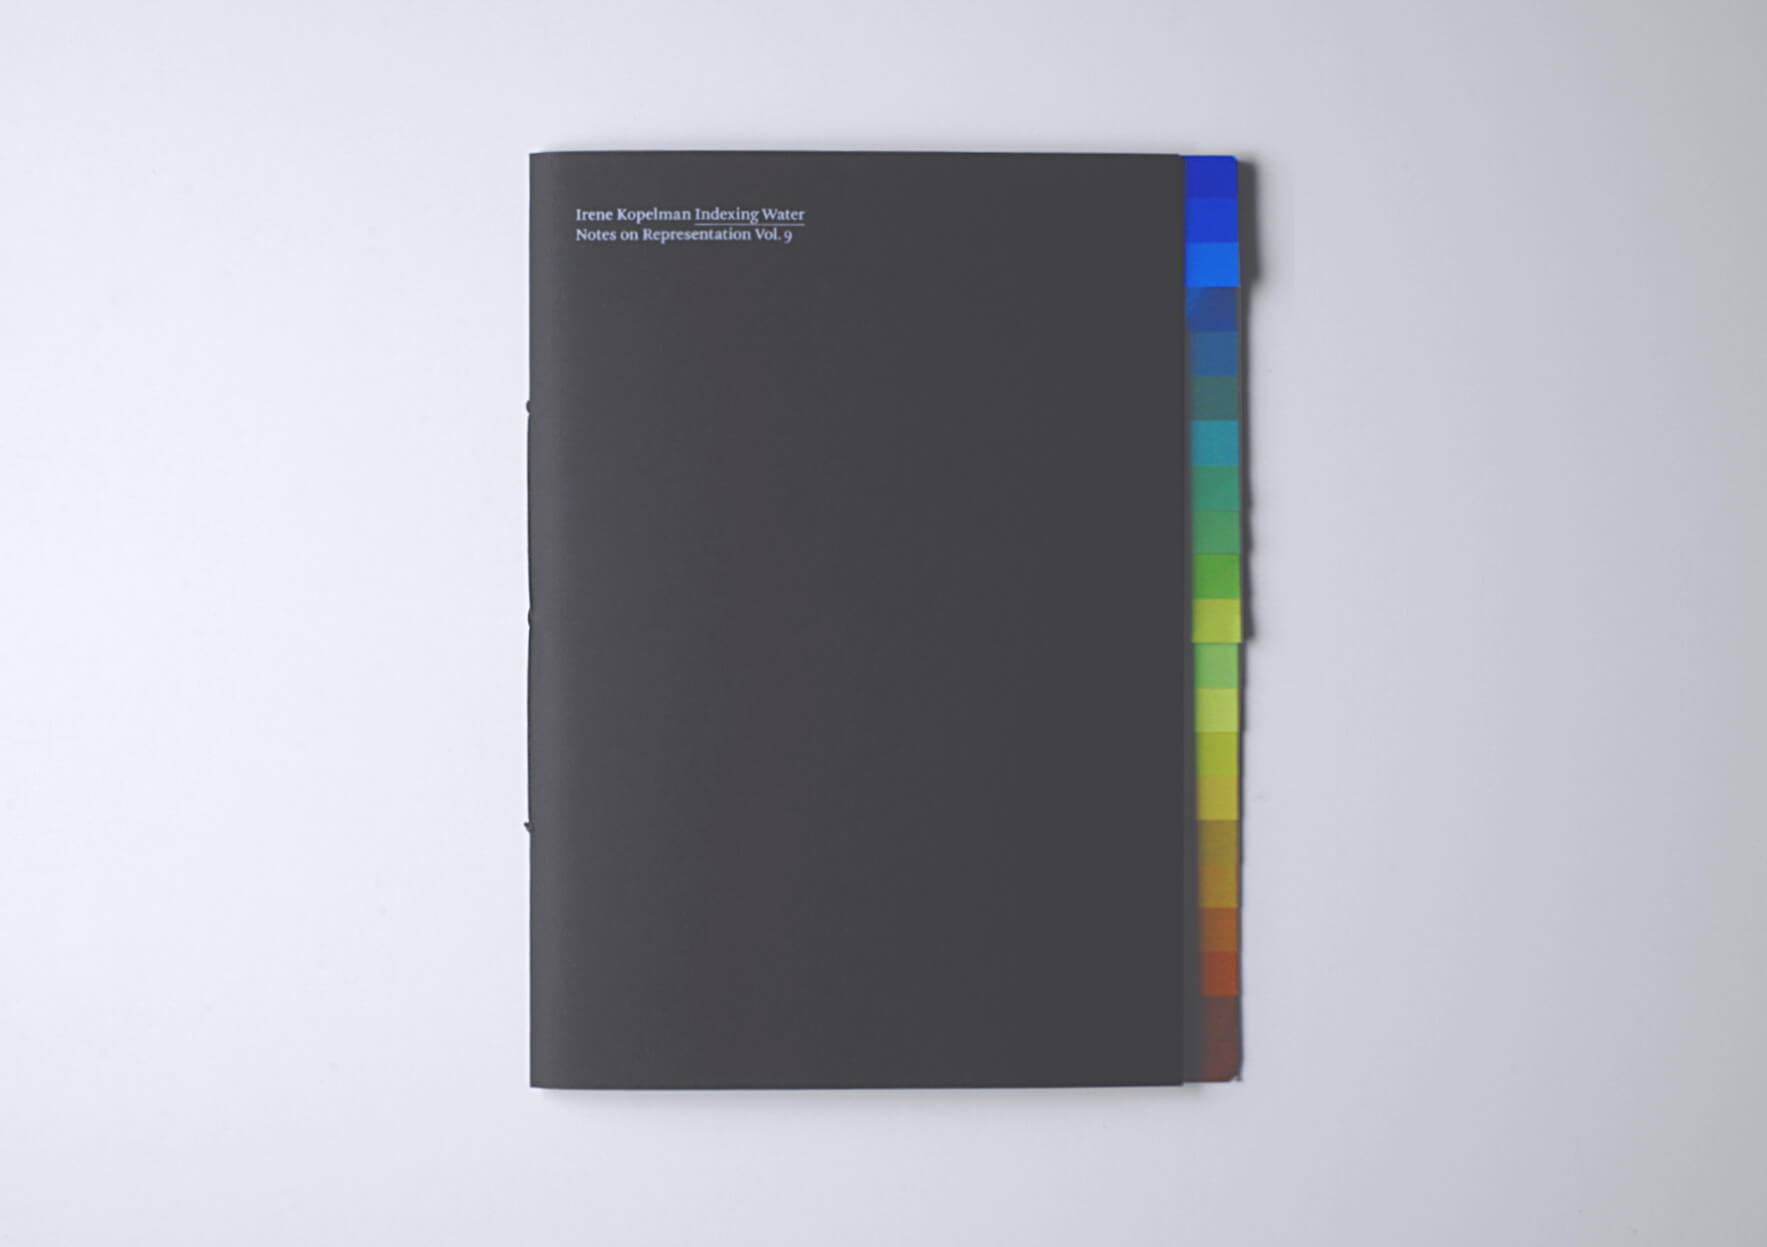 Irene Kopelman Indexing Water. Notes on Representation V.9, 2018 28 x 21 cm, 68 p. Texts in English. Ed. Roma Publications | Mother | ProjecteSD